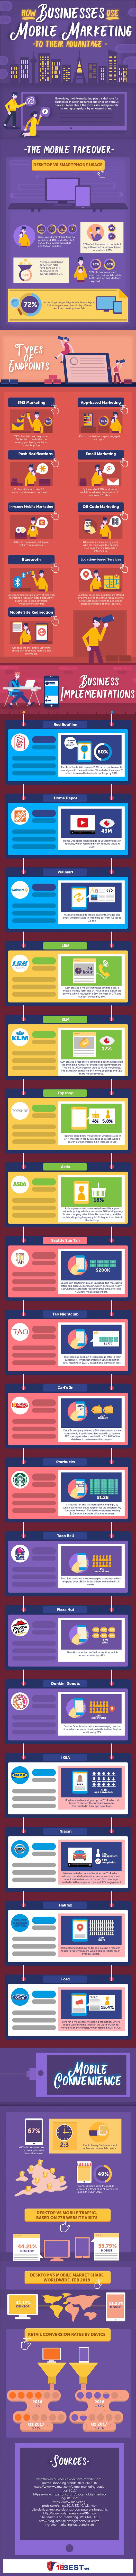 How Businesses Use Mobile Marketing To Their Advantage - #infographic